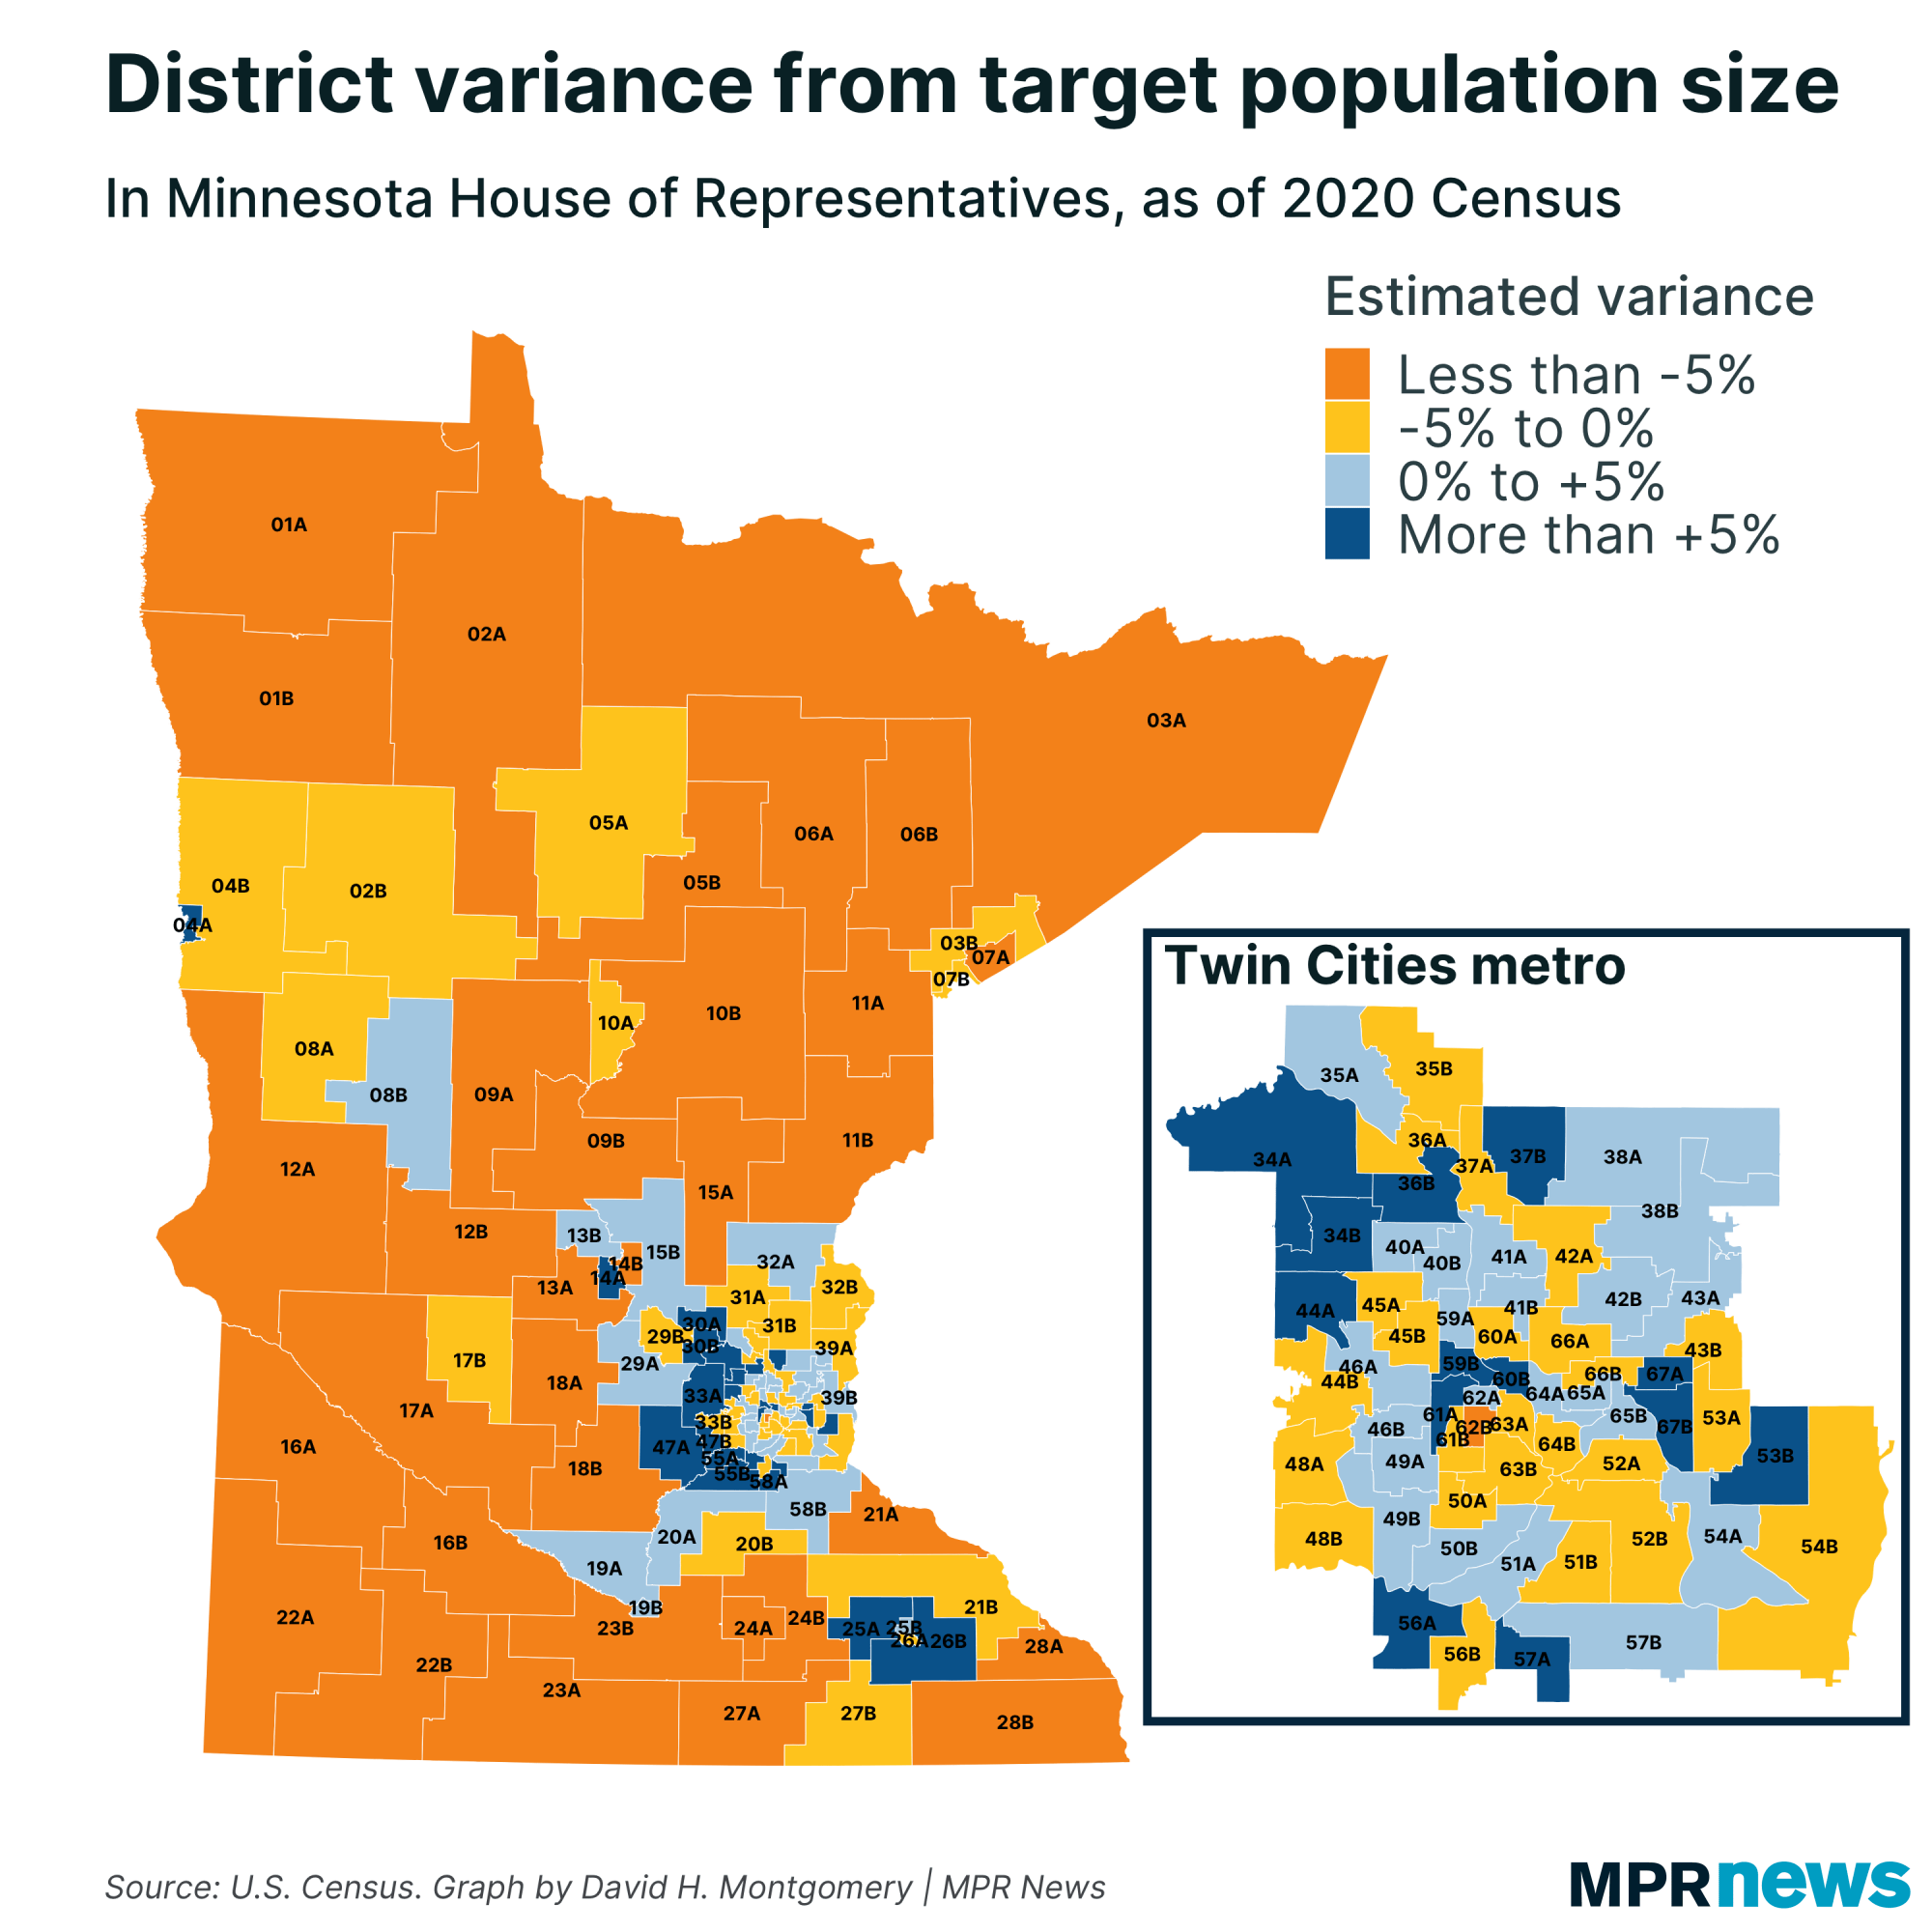 district variance from target population size